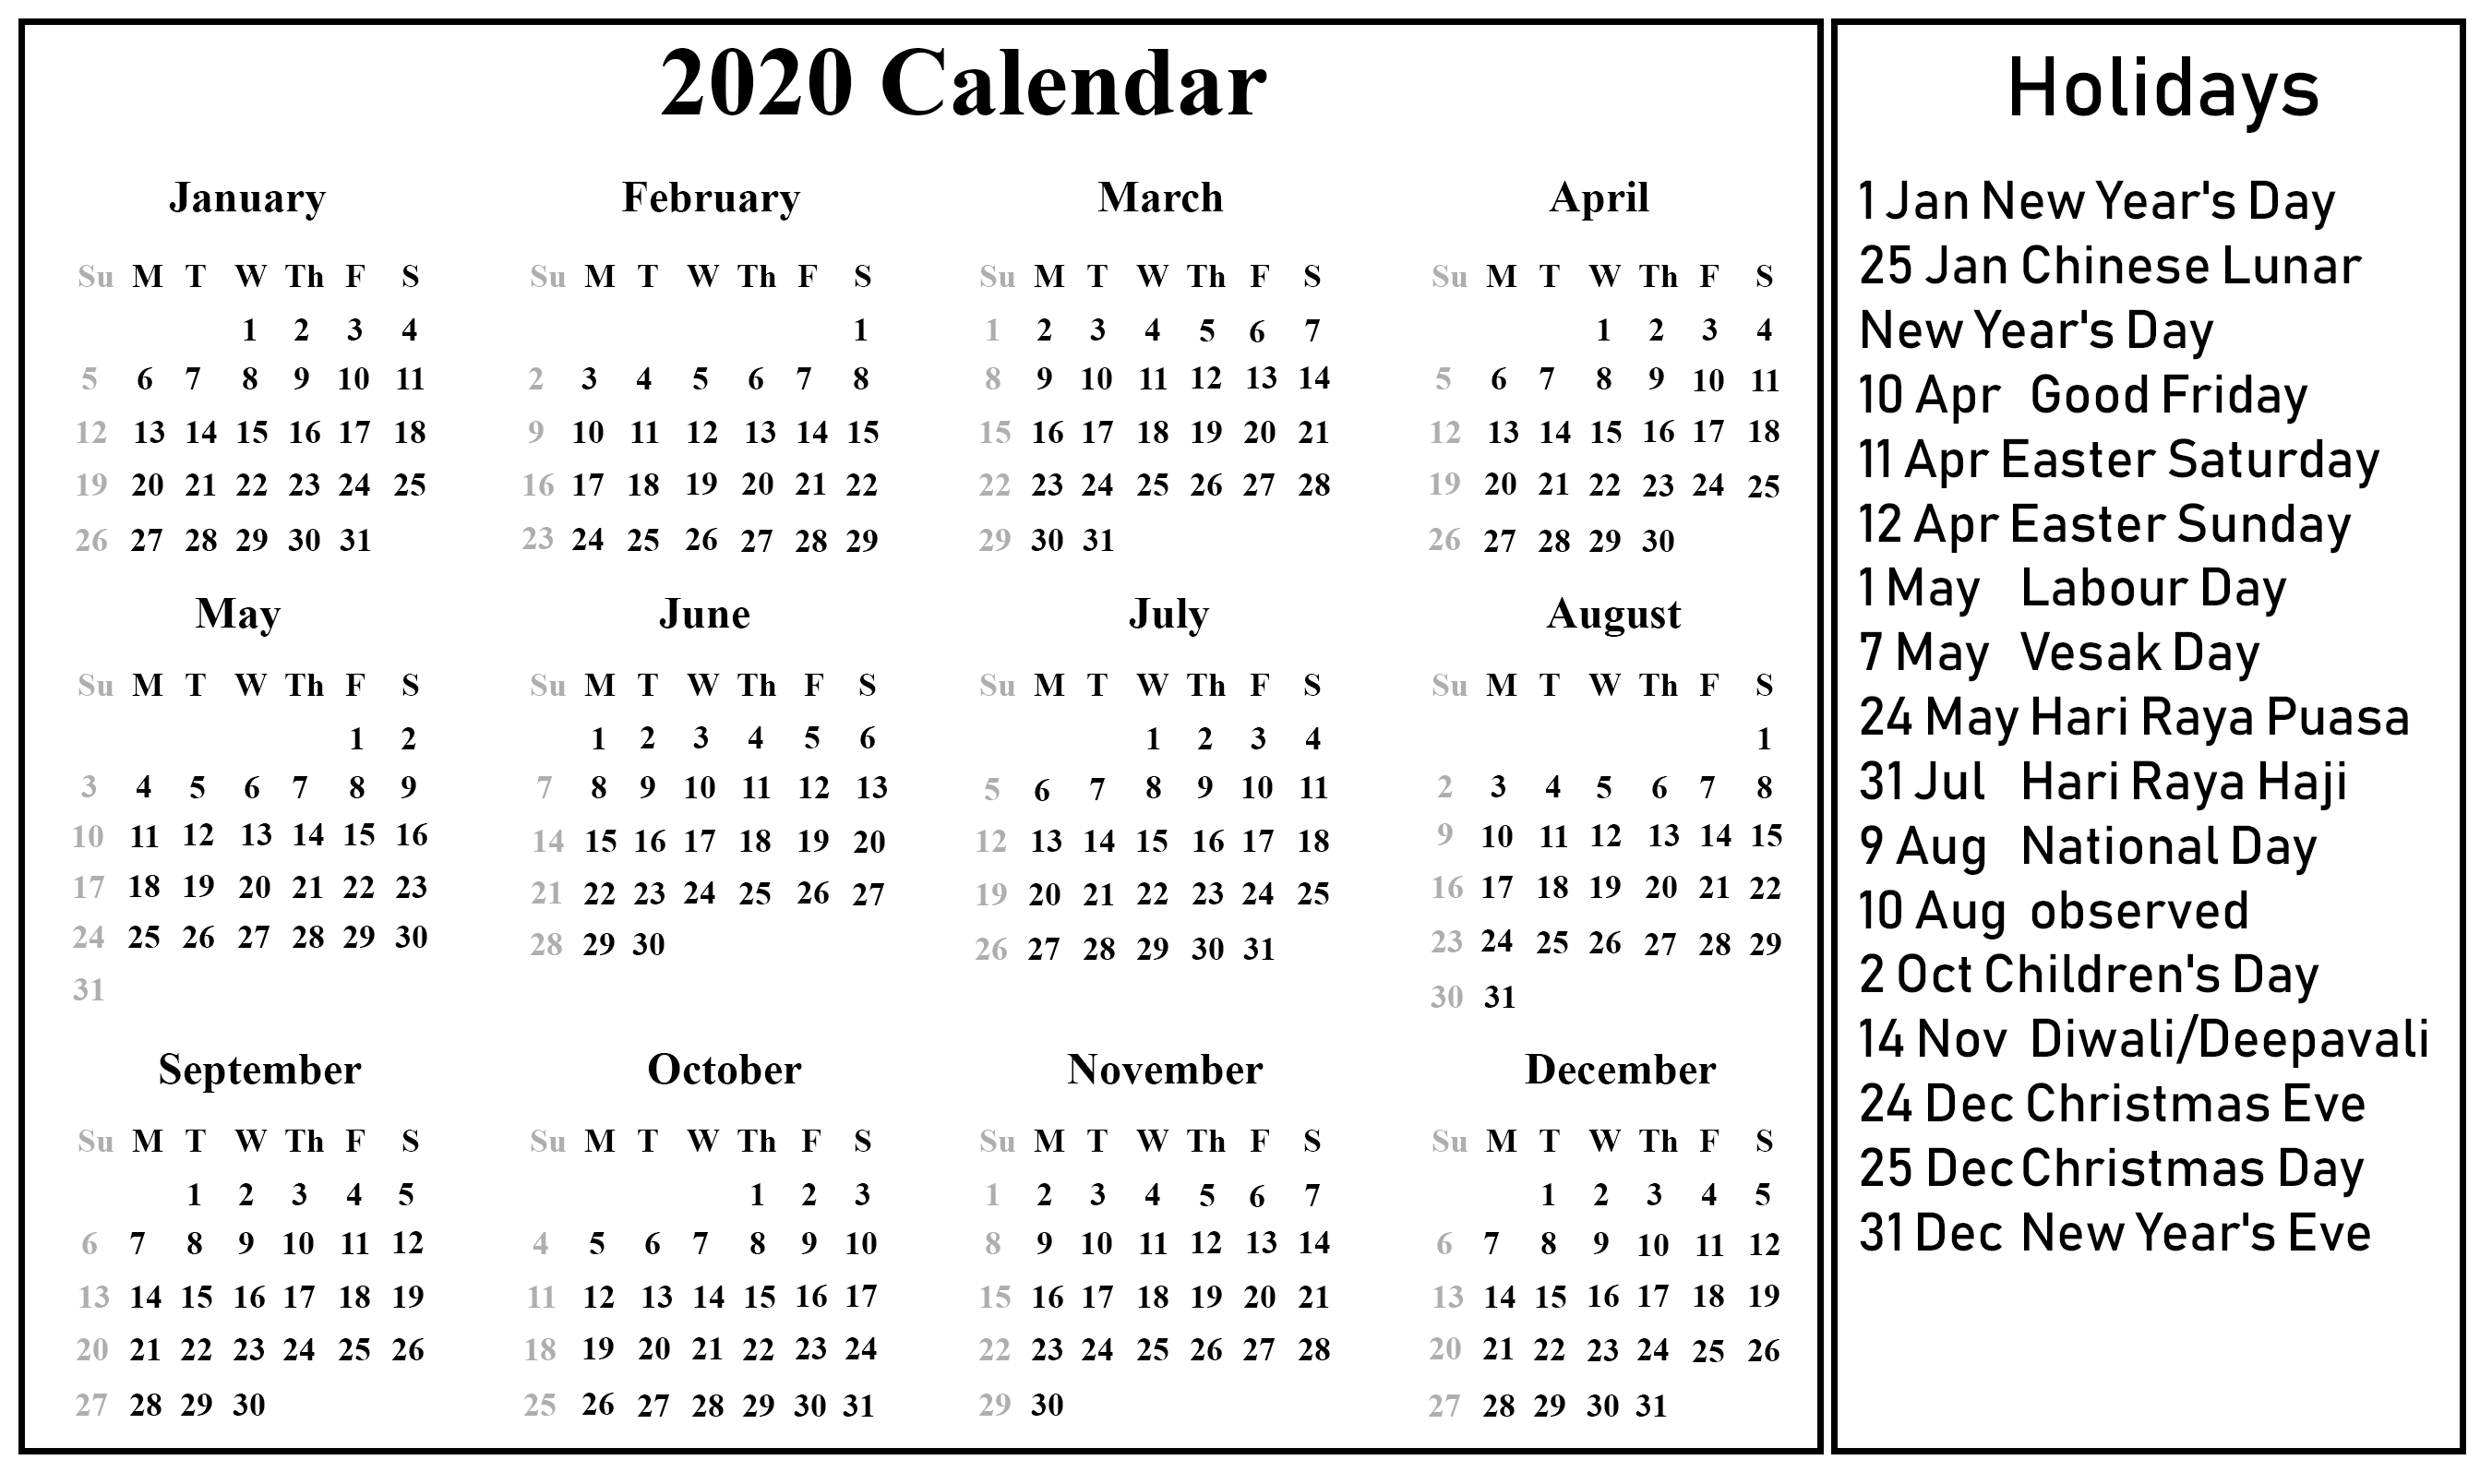 Holidays Of The Year 2020